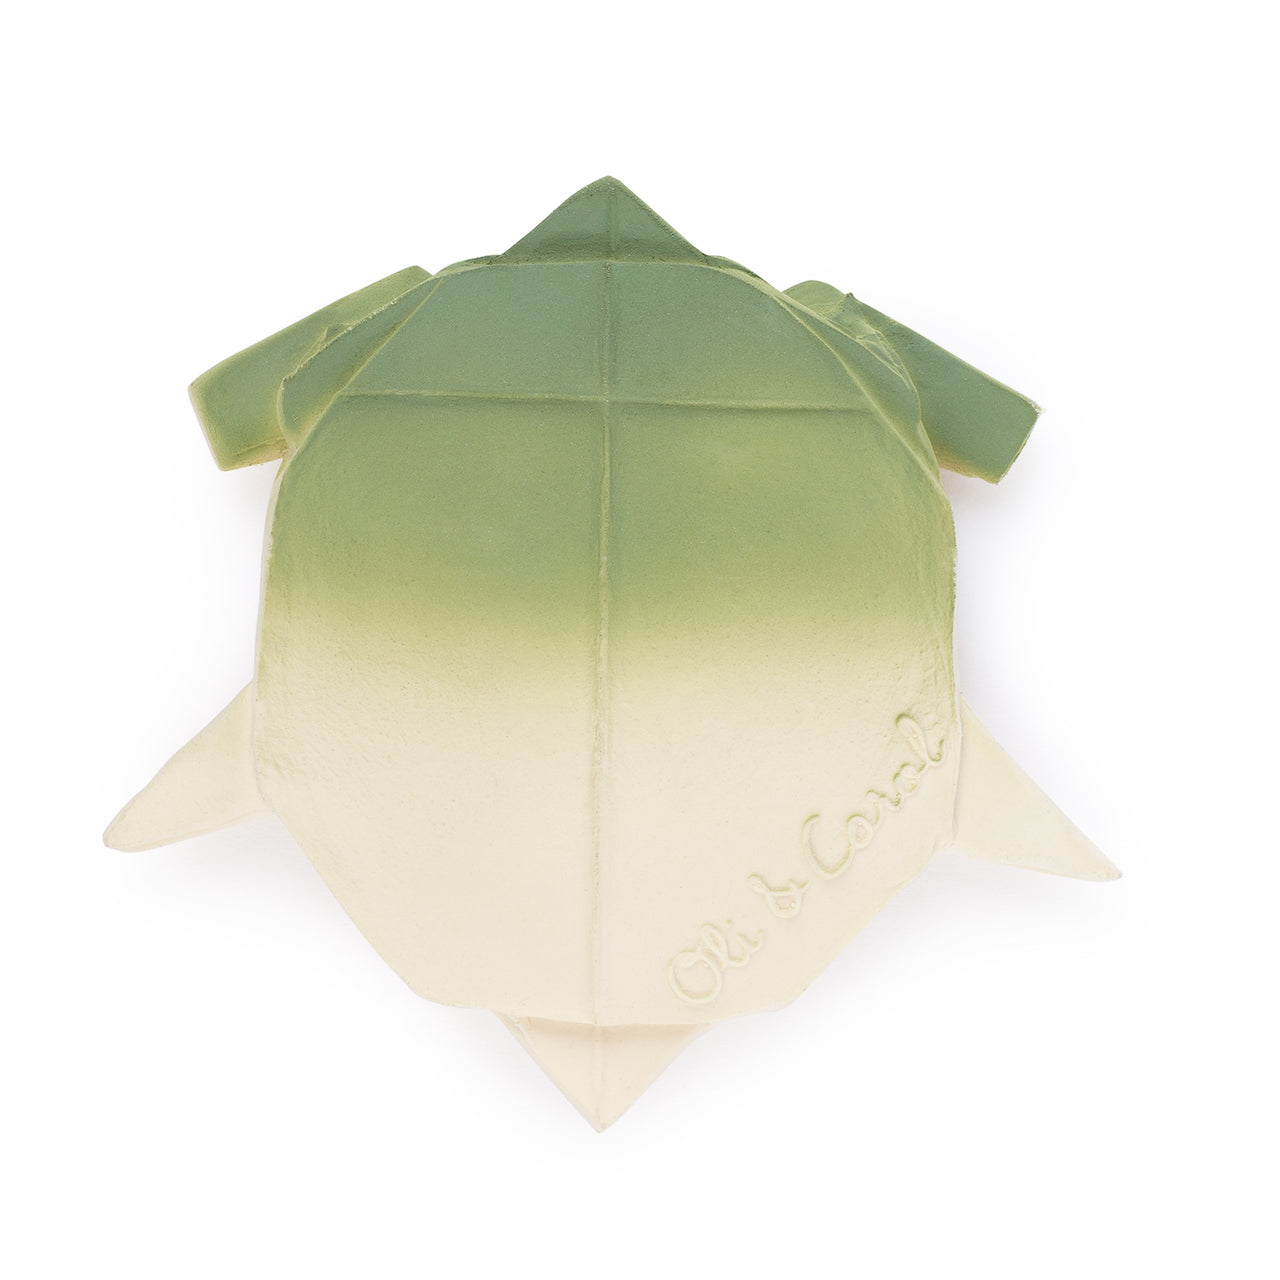 Tortuga H2Origami de caucho natural - Just the Sea by SEA LOVERS